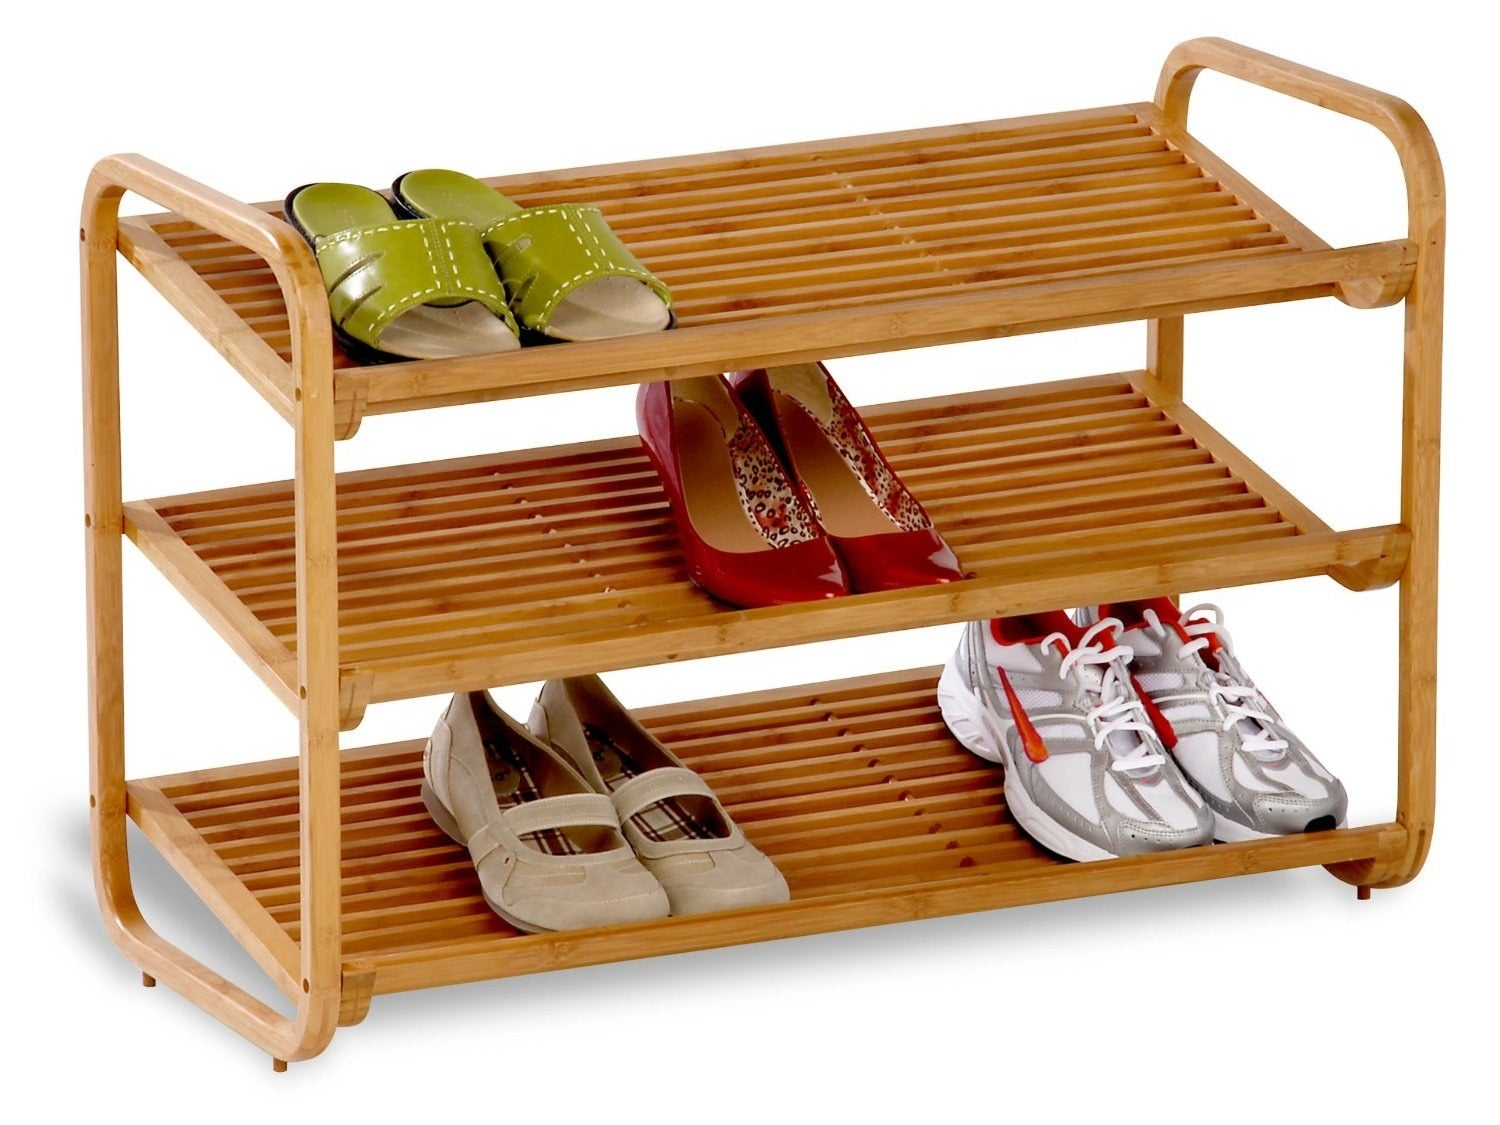 Declutter your entry with a bamboo shoe shelf that's naturally water-resistant and pretty.